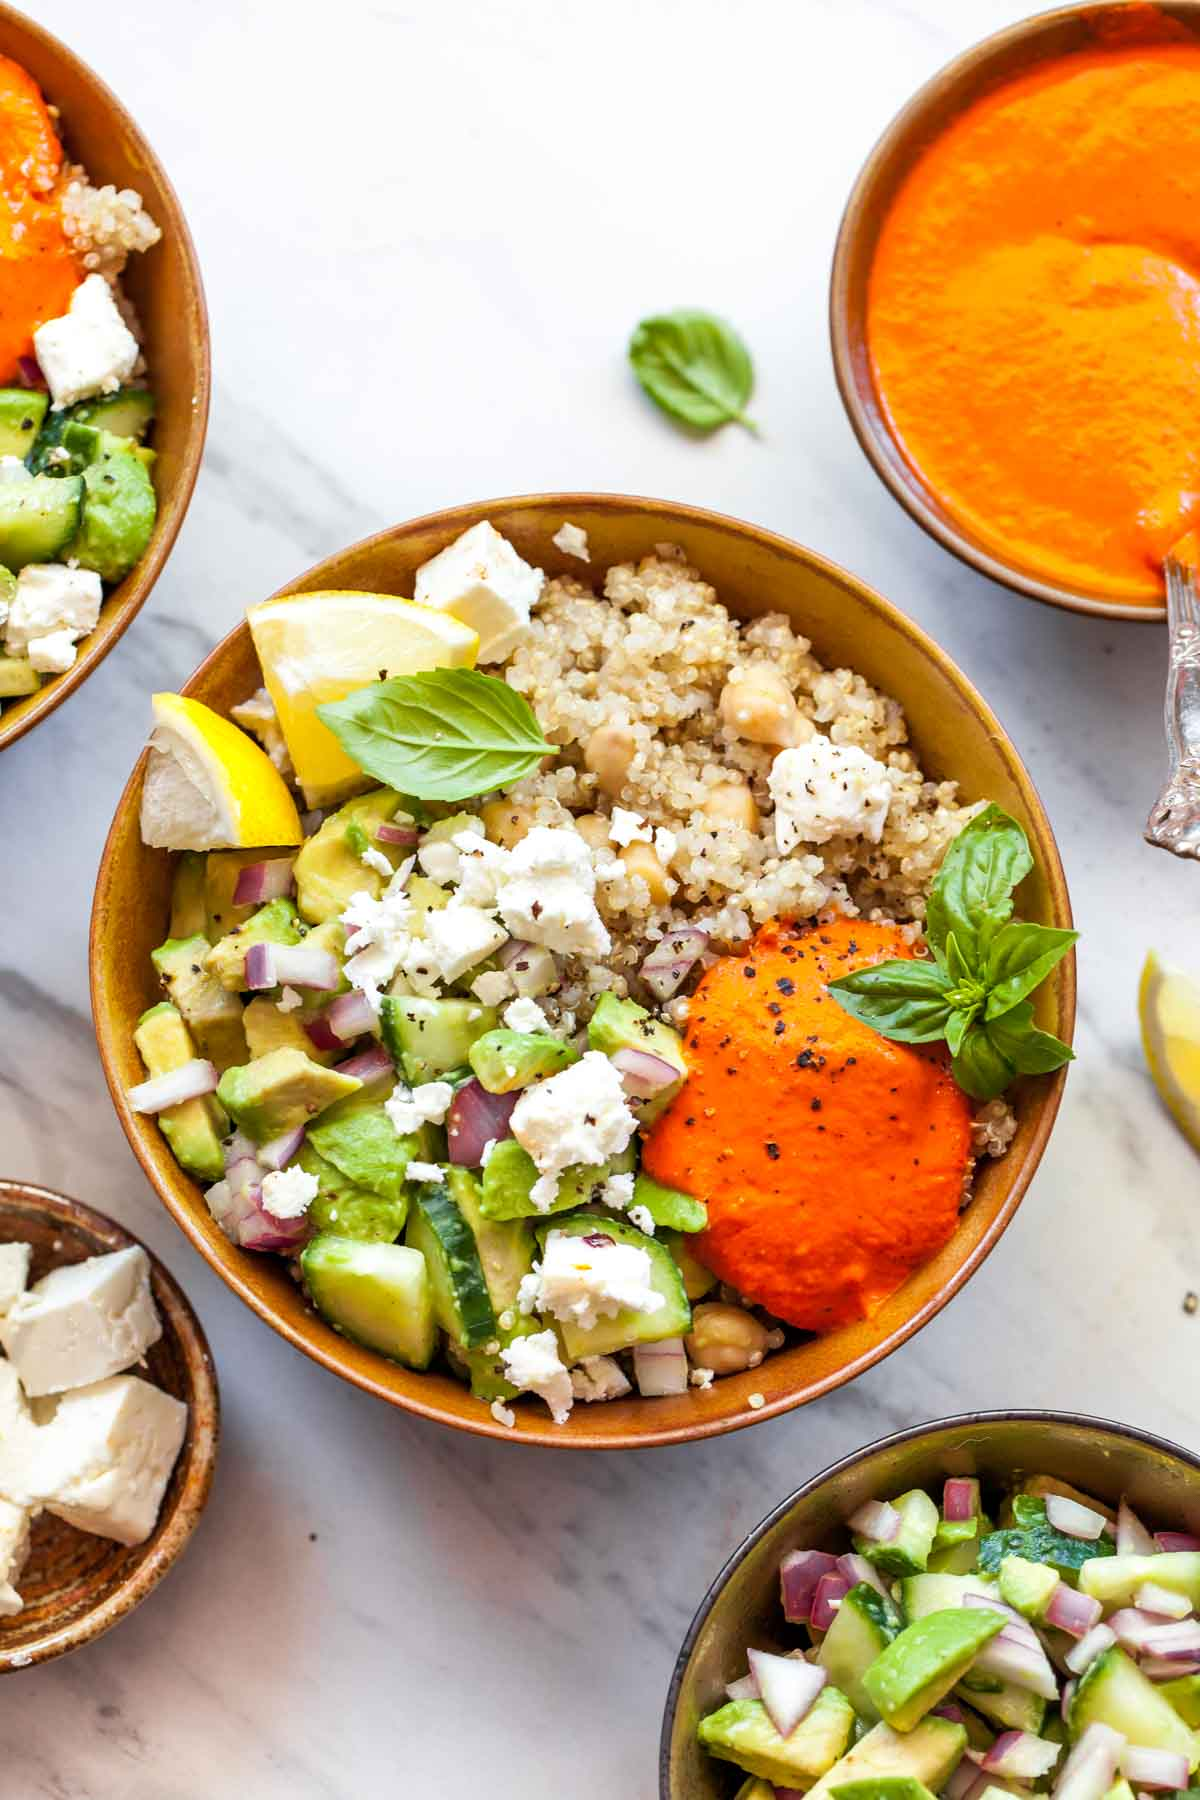 Quinoa, chickpeas, and avocado salad in a gold bowl topped with orange red pepper sauce and basil